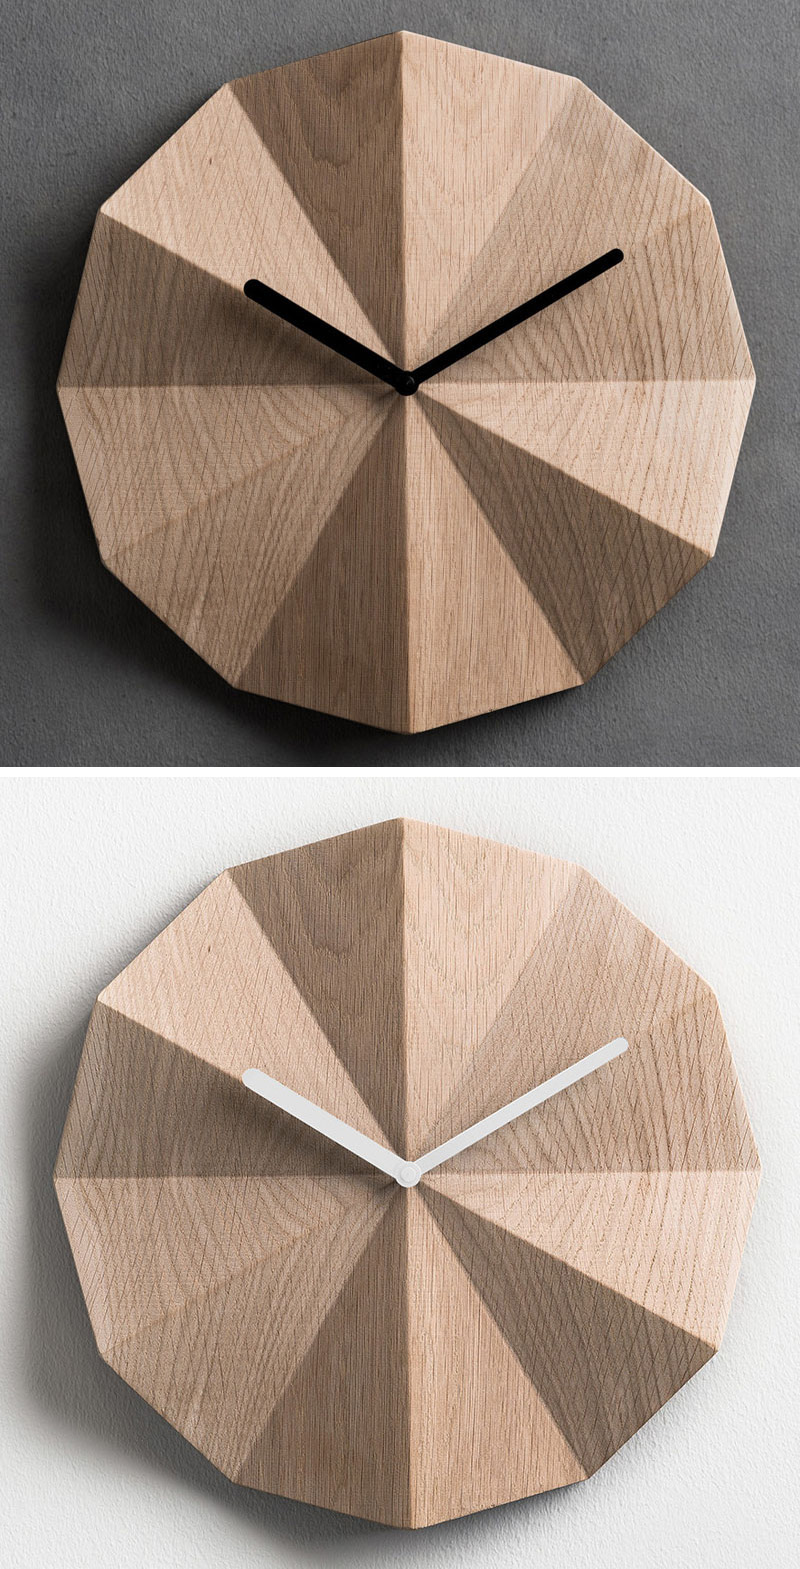 The folds on the surface of these modern wood wall clocks create shadows that change throughout the day as light moves throughout the room. #ModernWoodClock #WallClock #ModernDecor #ModernClock